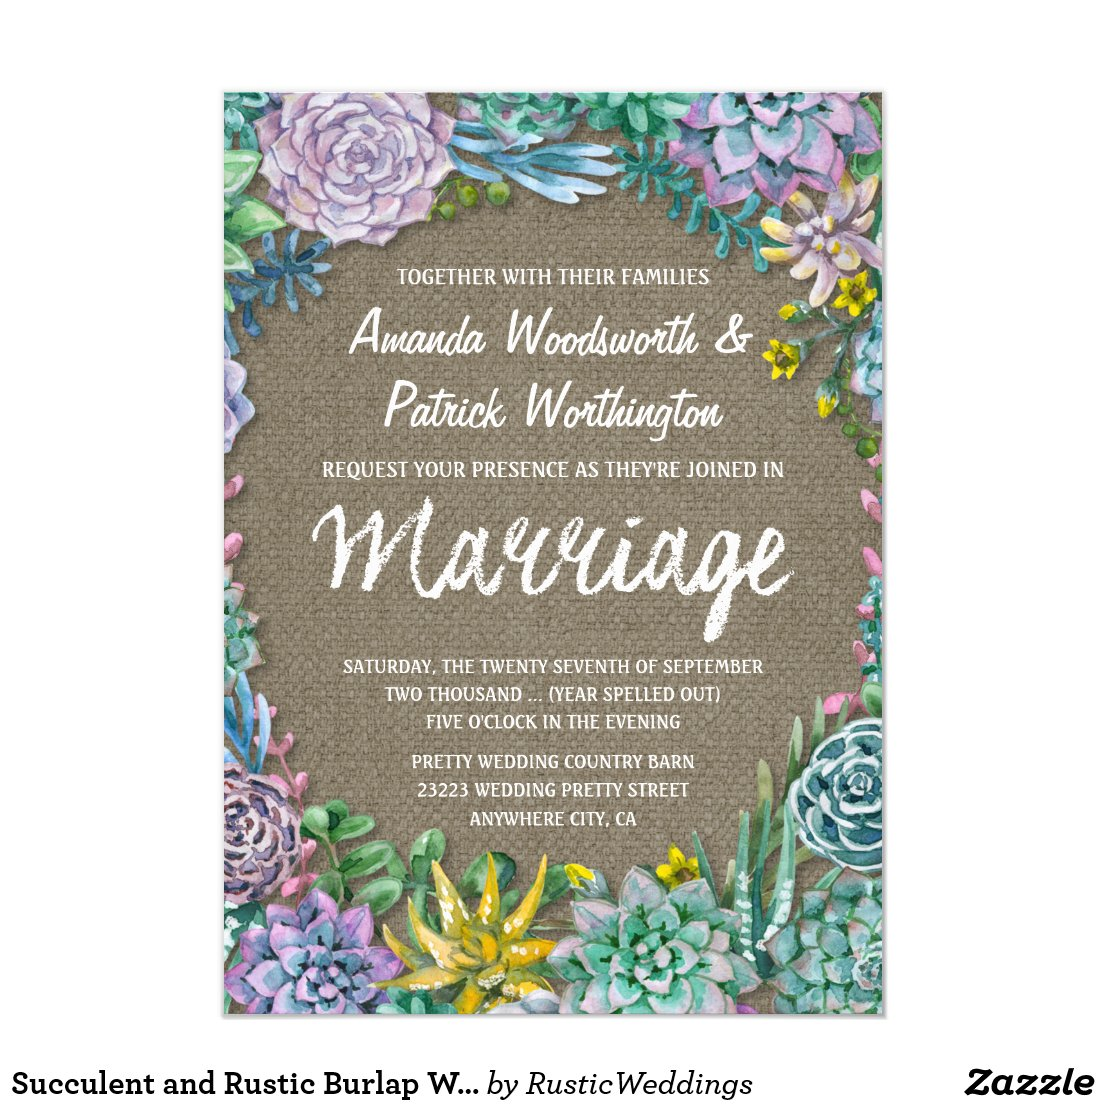 Succulent and Rustic Burlap Wedding Invitations